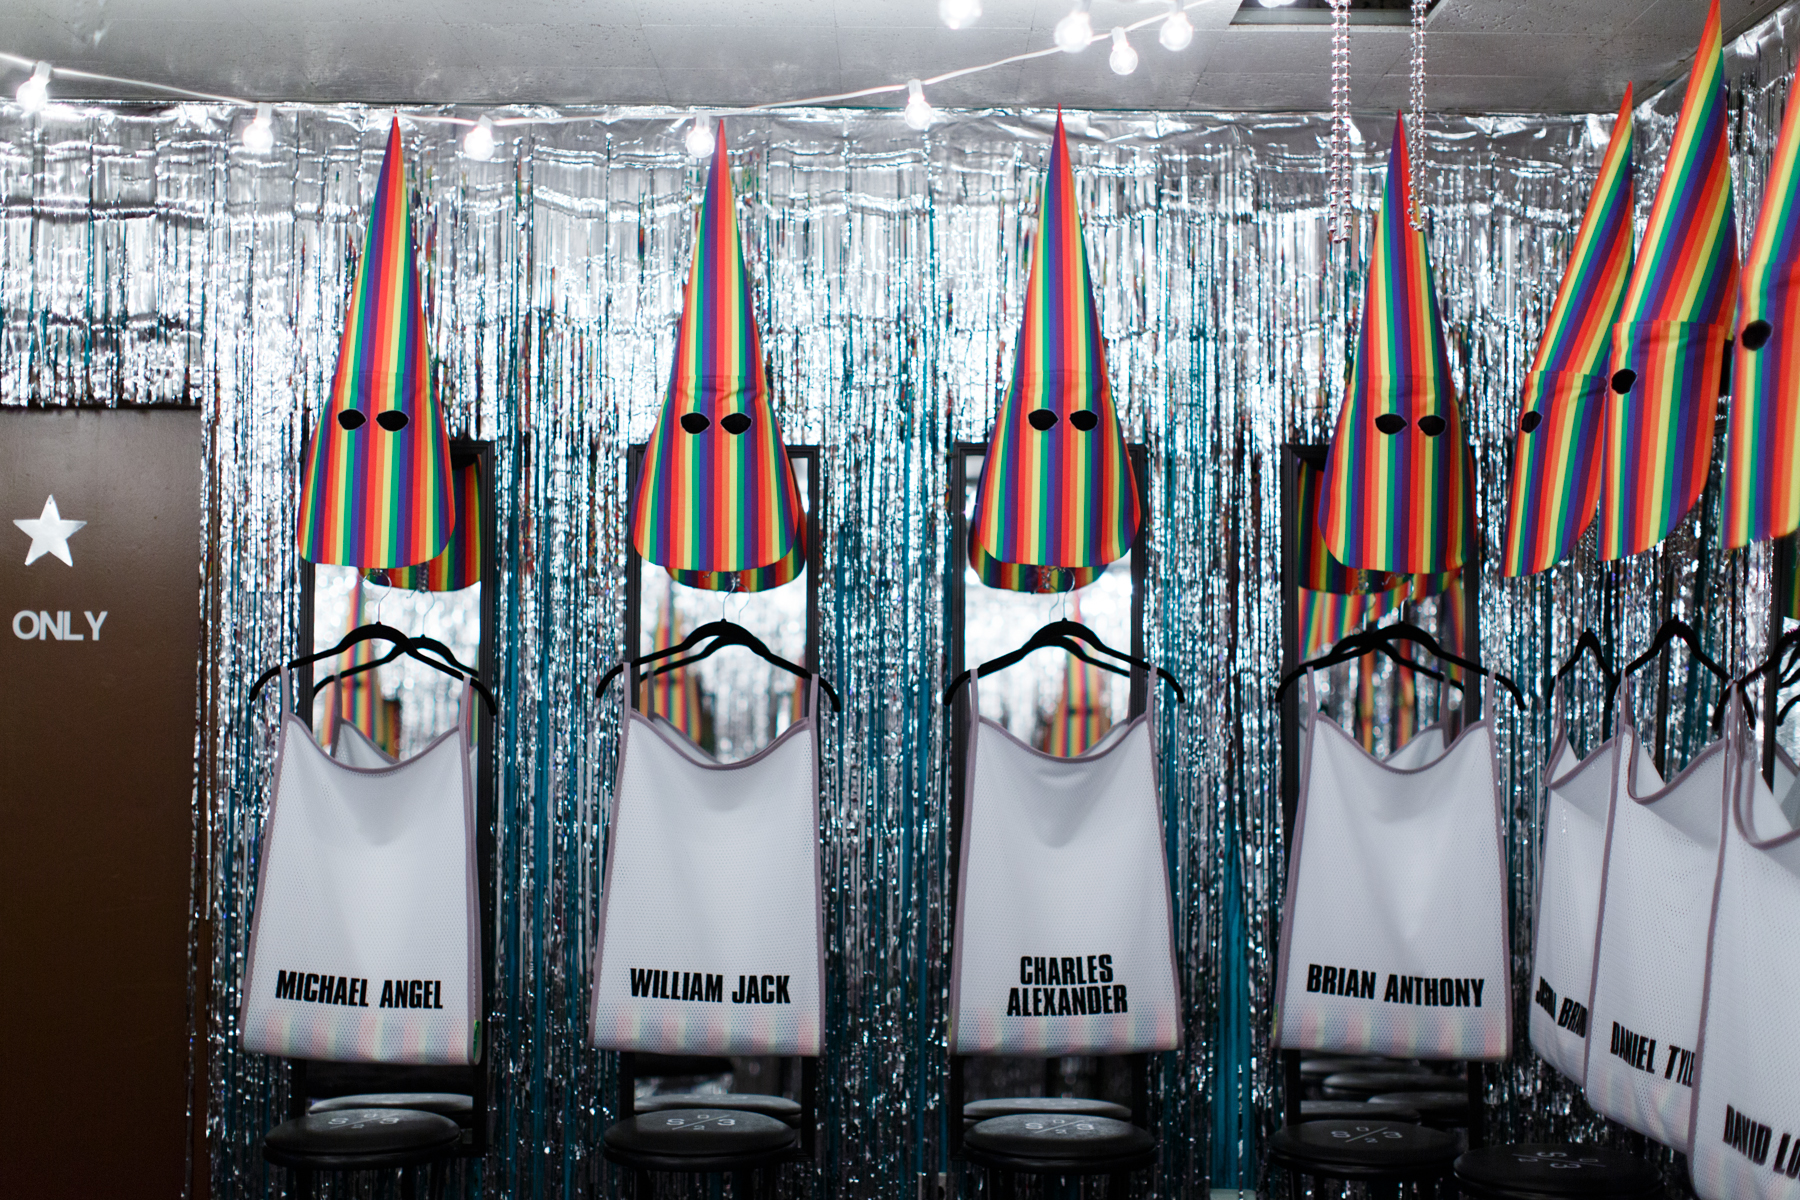 Jeffrey Augustine Songco, Society of 23's Locker Dressing Room, 2017. Mixed-media installation. Exhibited at the City Water Building by Richard App Gallery in Grand Rapids, Michigan as part of ArtPrize Nine.